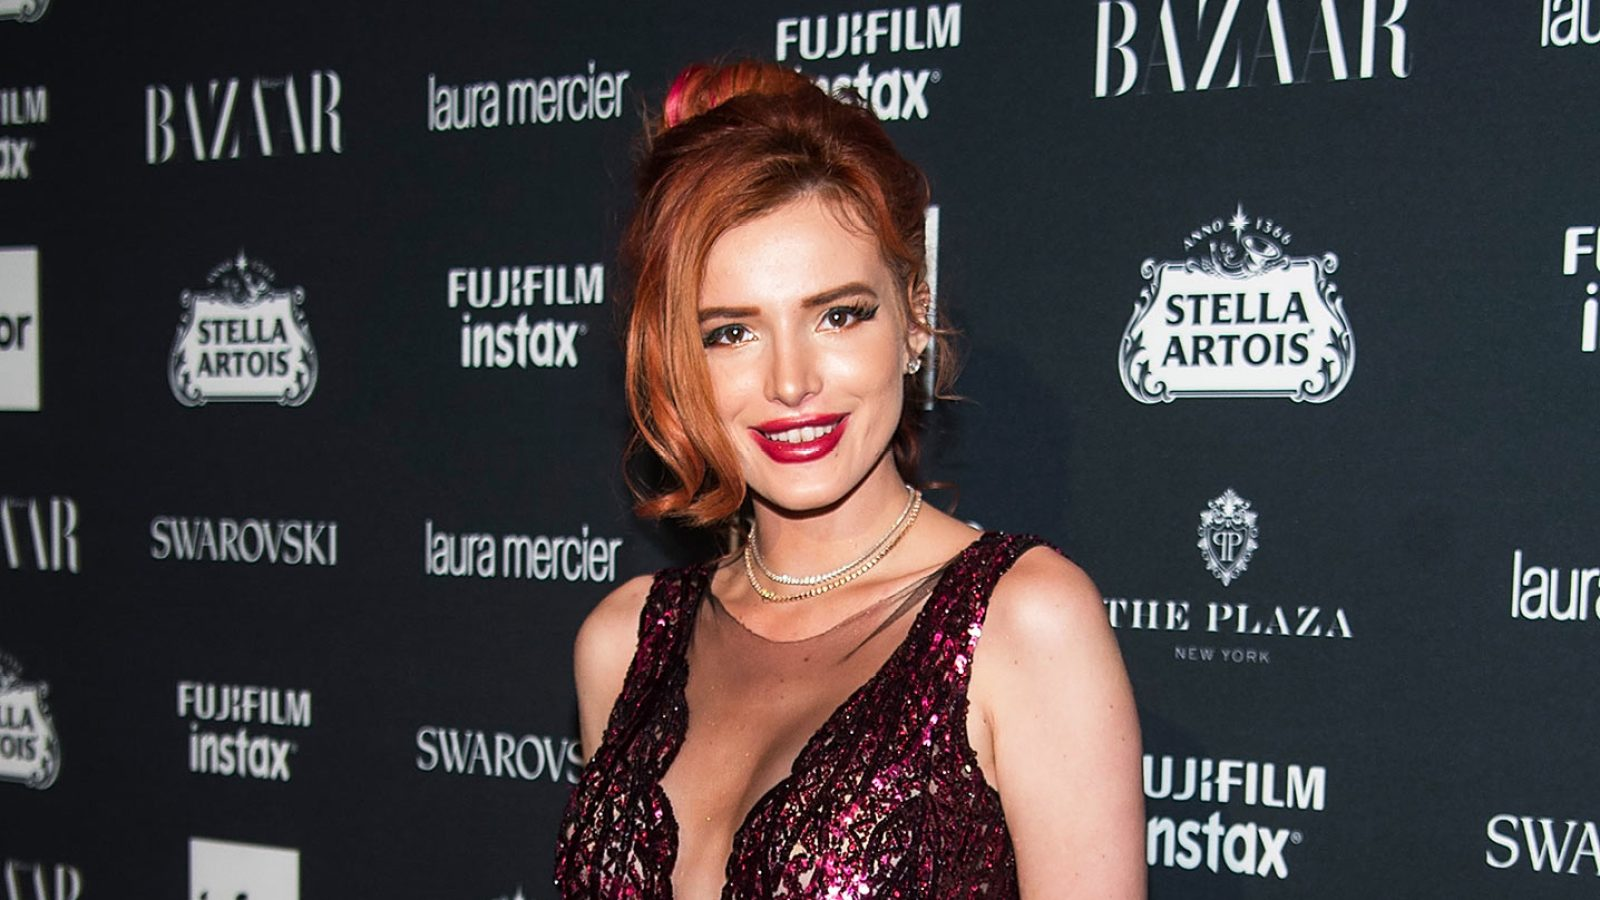 Bella thorne life information - Bella Thorne Remembers Ex Boyfriend Lil Peep You Deserved More Out Of Life